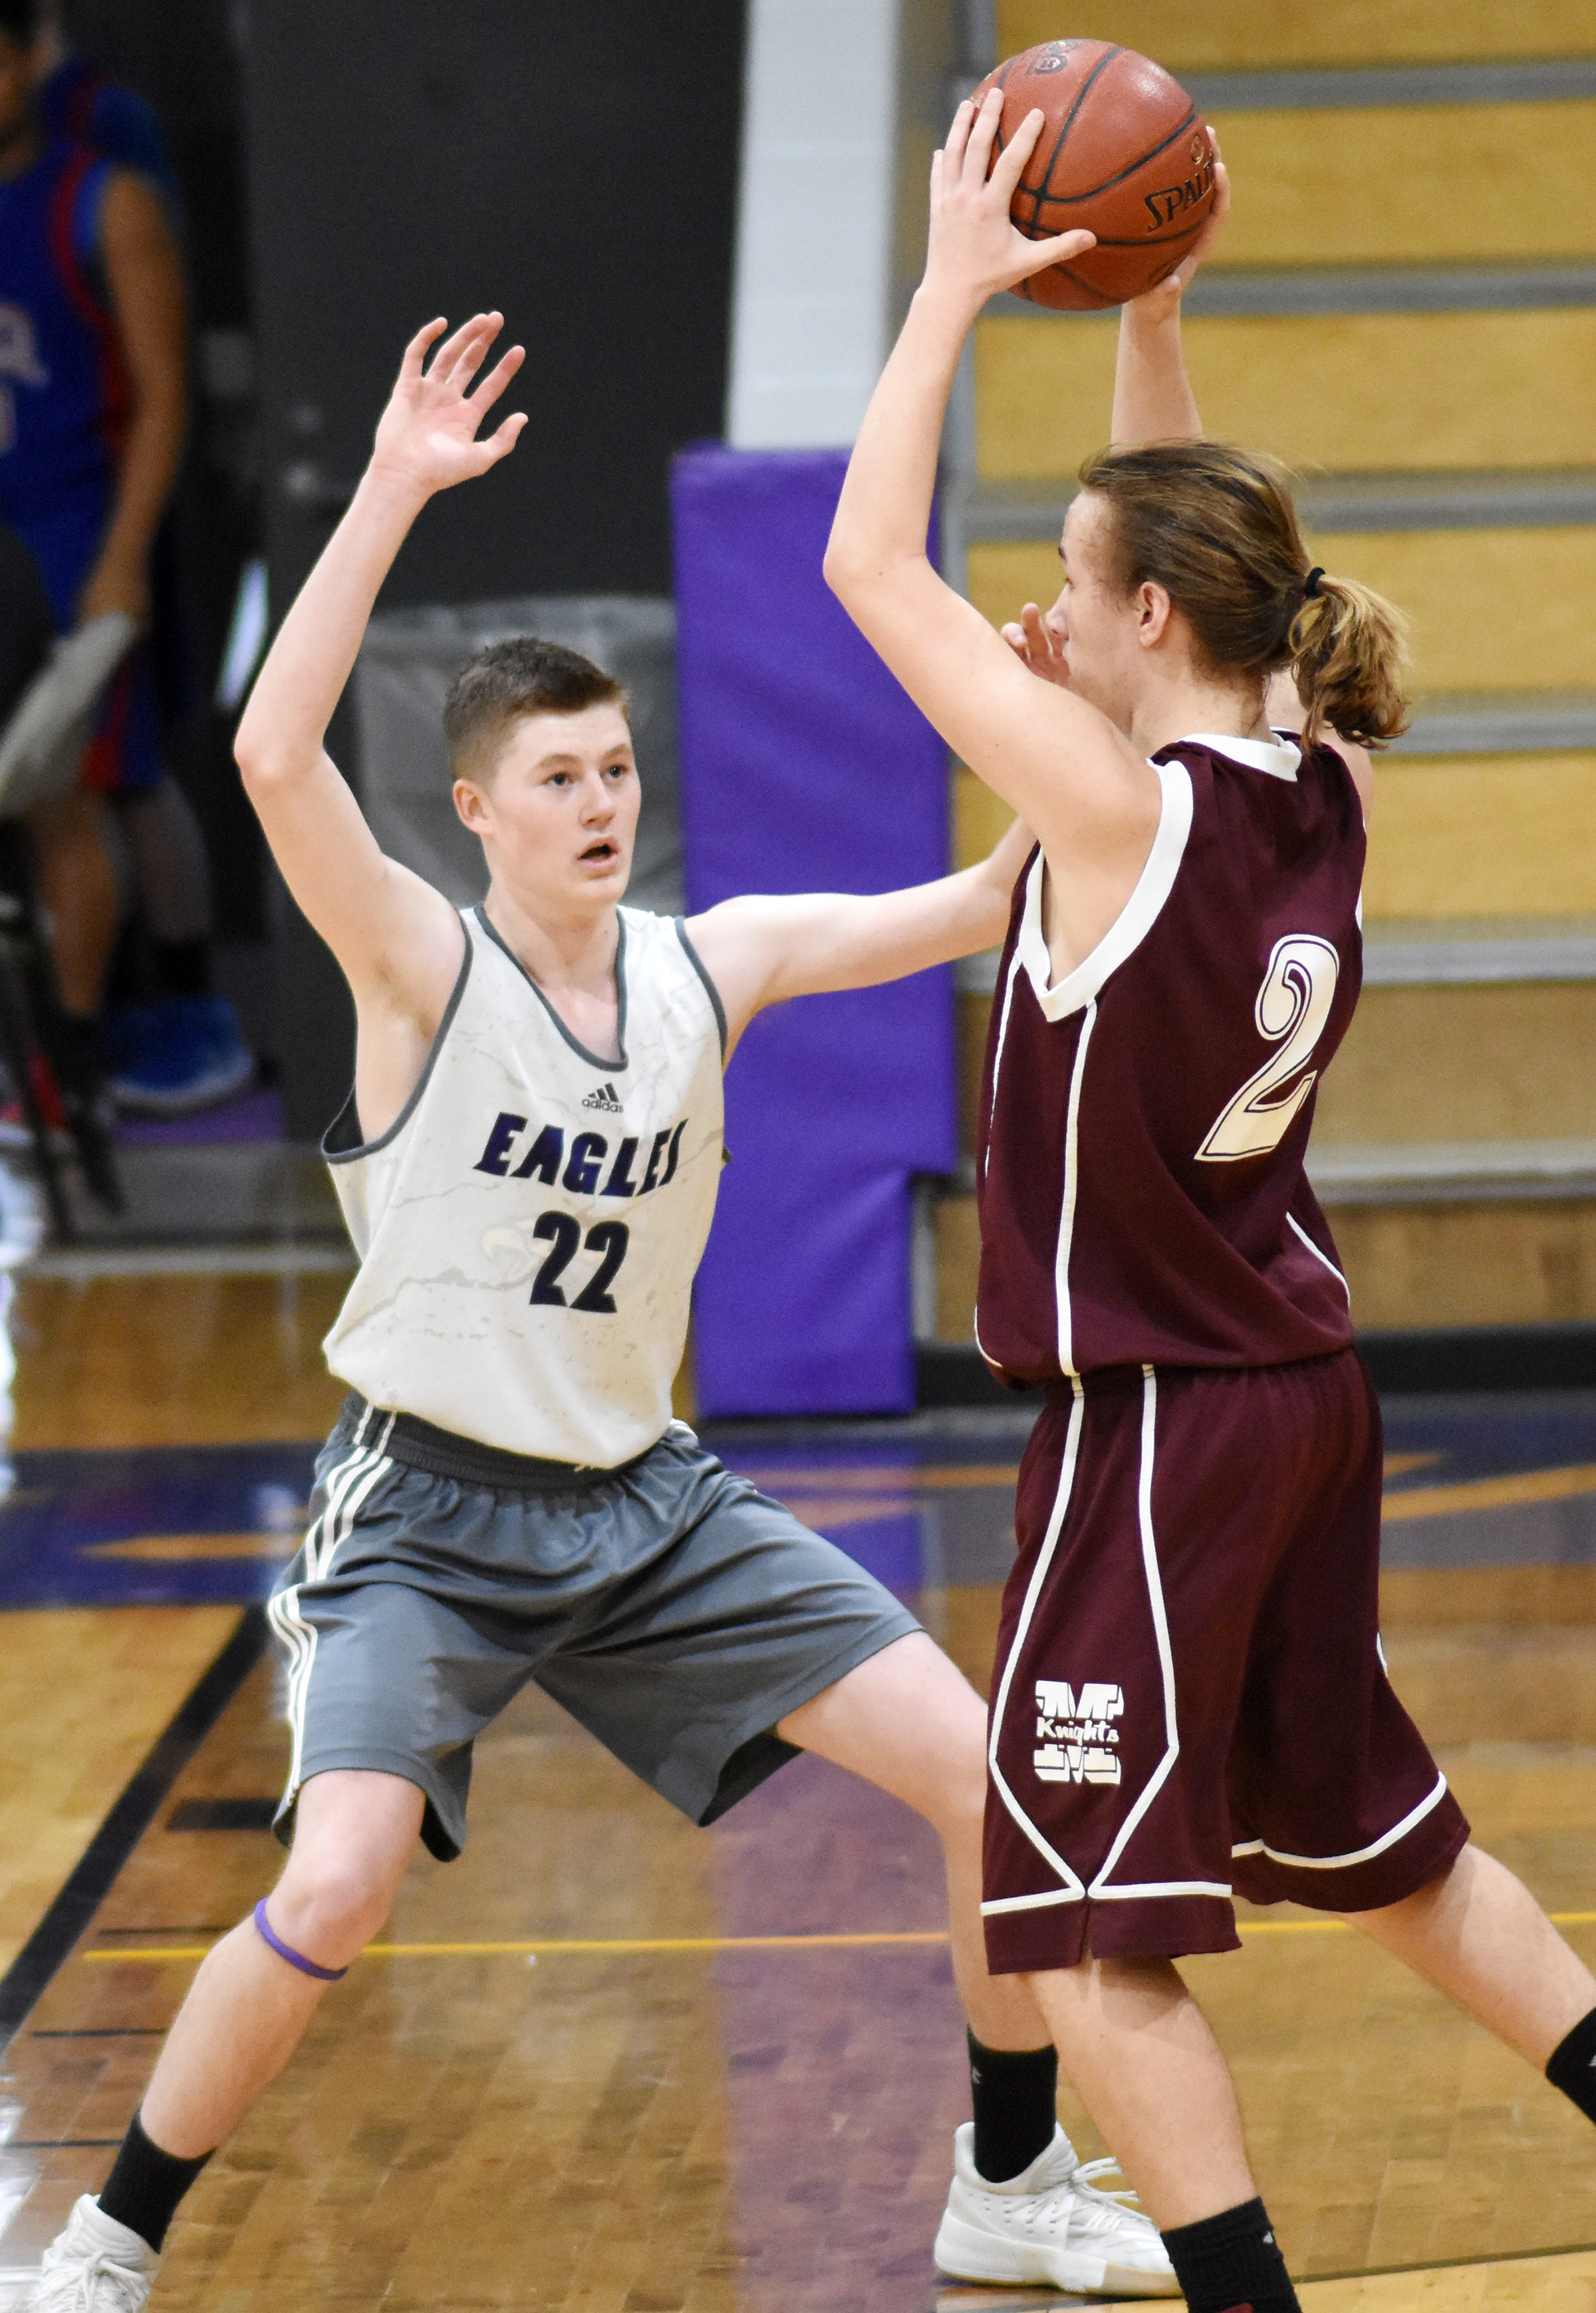 CHS freshman Tristin Faulkner plays defense.